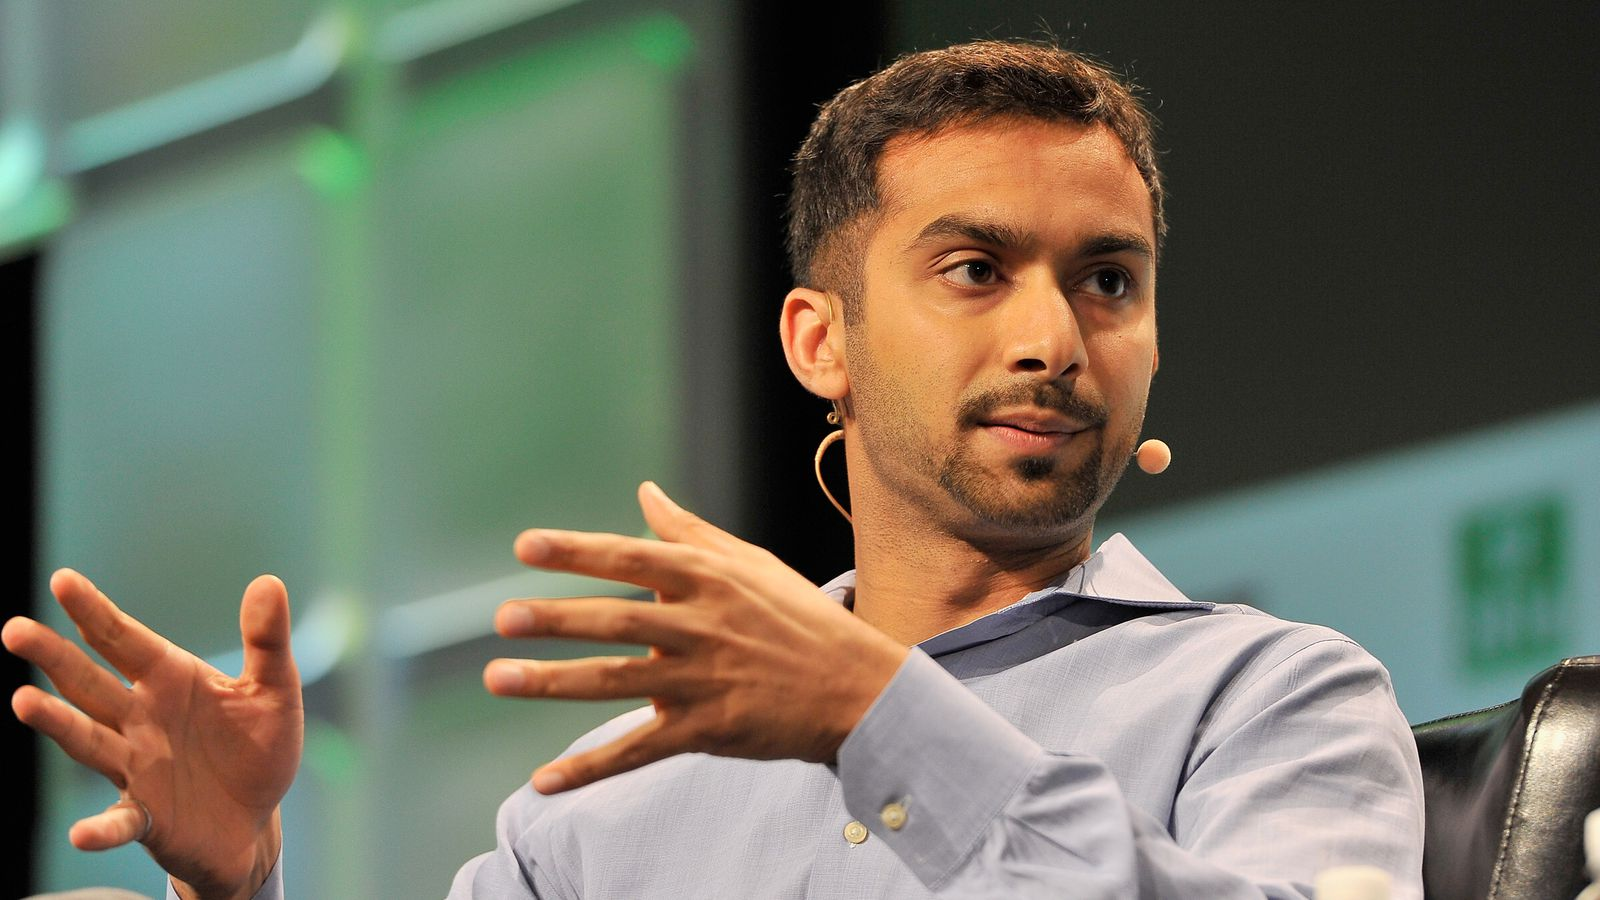 recode.net - Instacart will pay $4.6 million to settle a class-action lawsuit with its workers